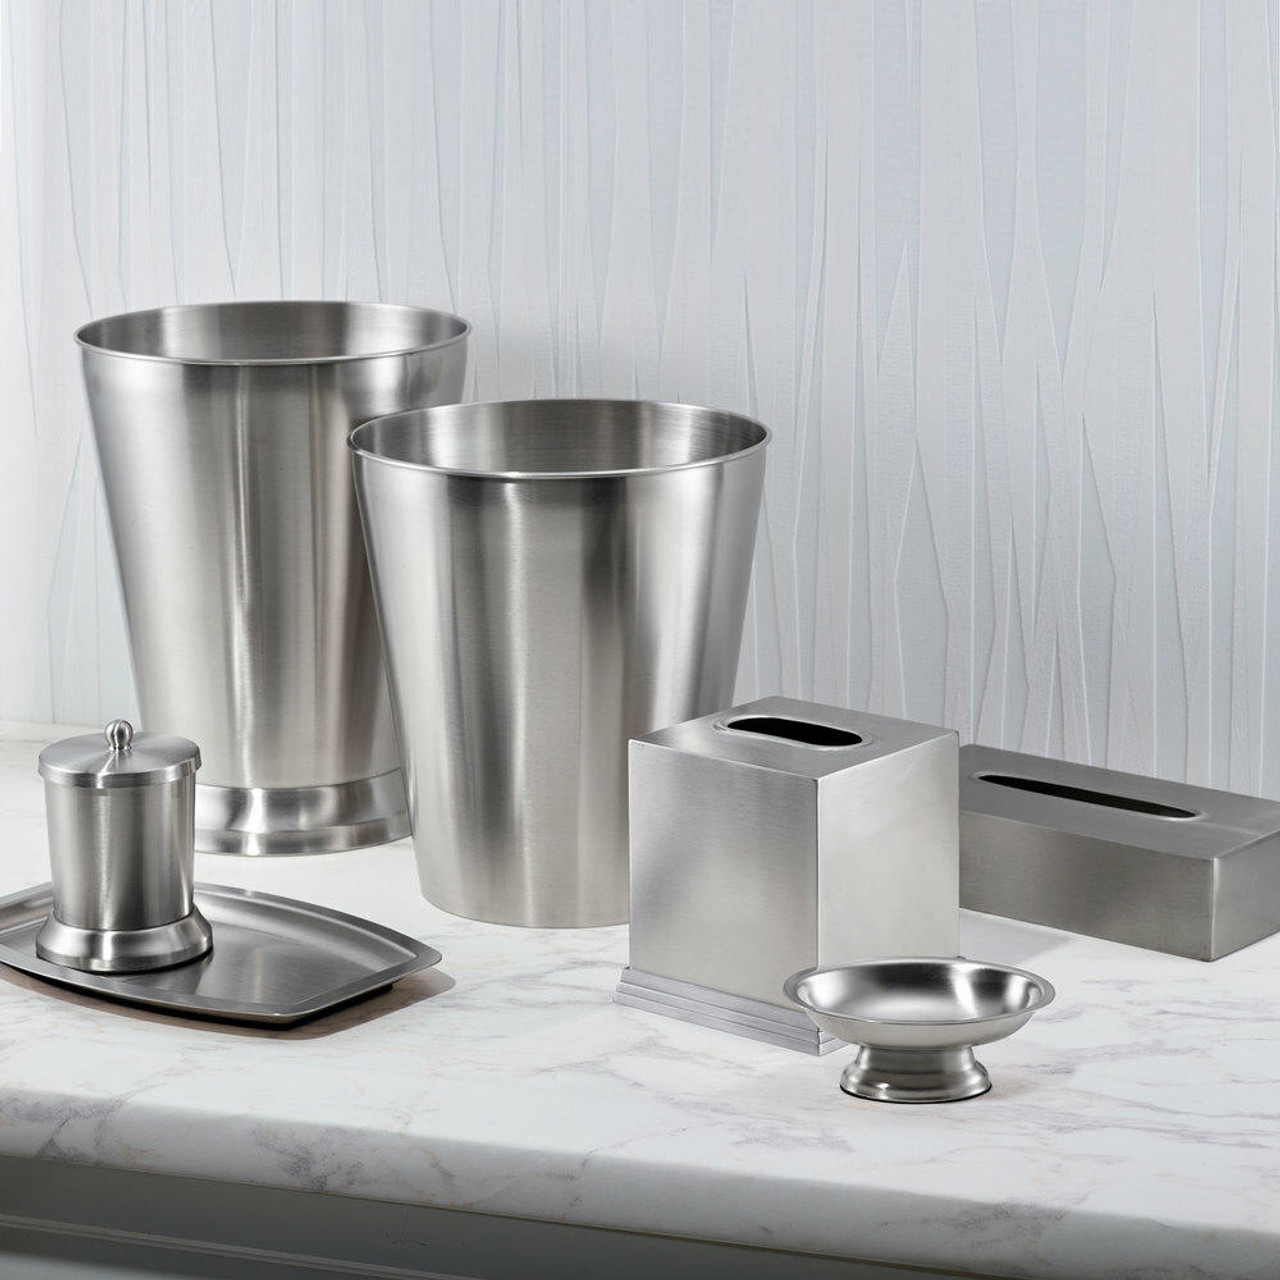 Focus Product Group Pewter a Stainless Steel Bath Accessory 4-piece Collection